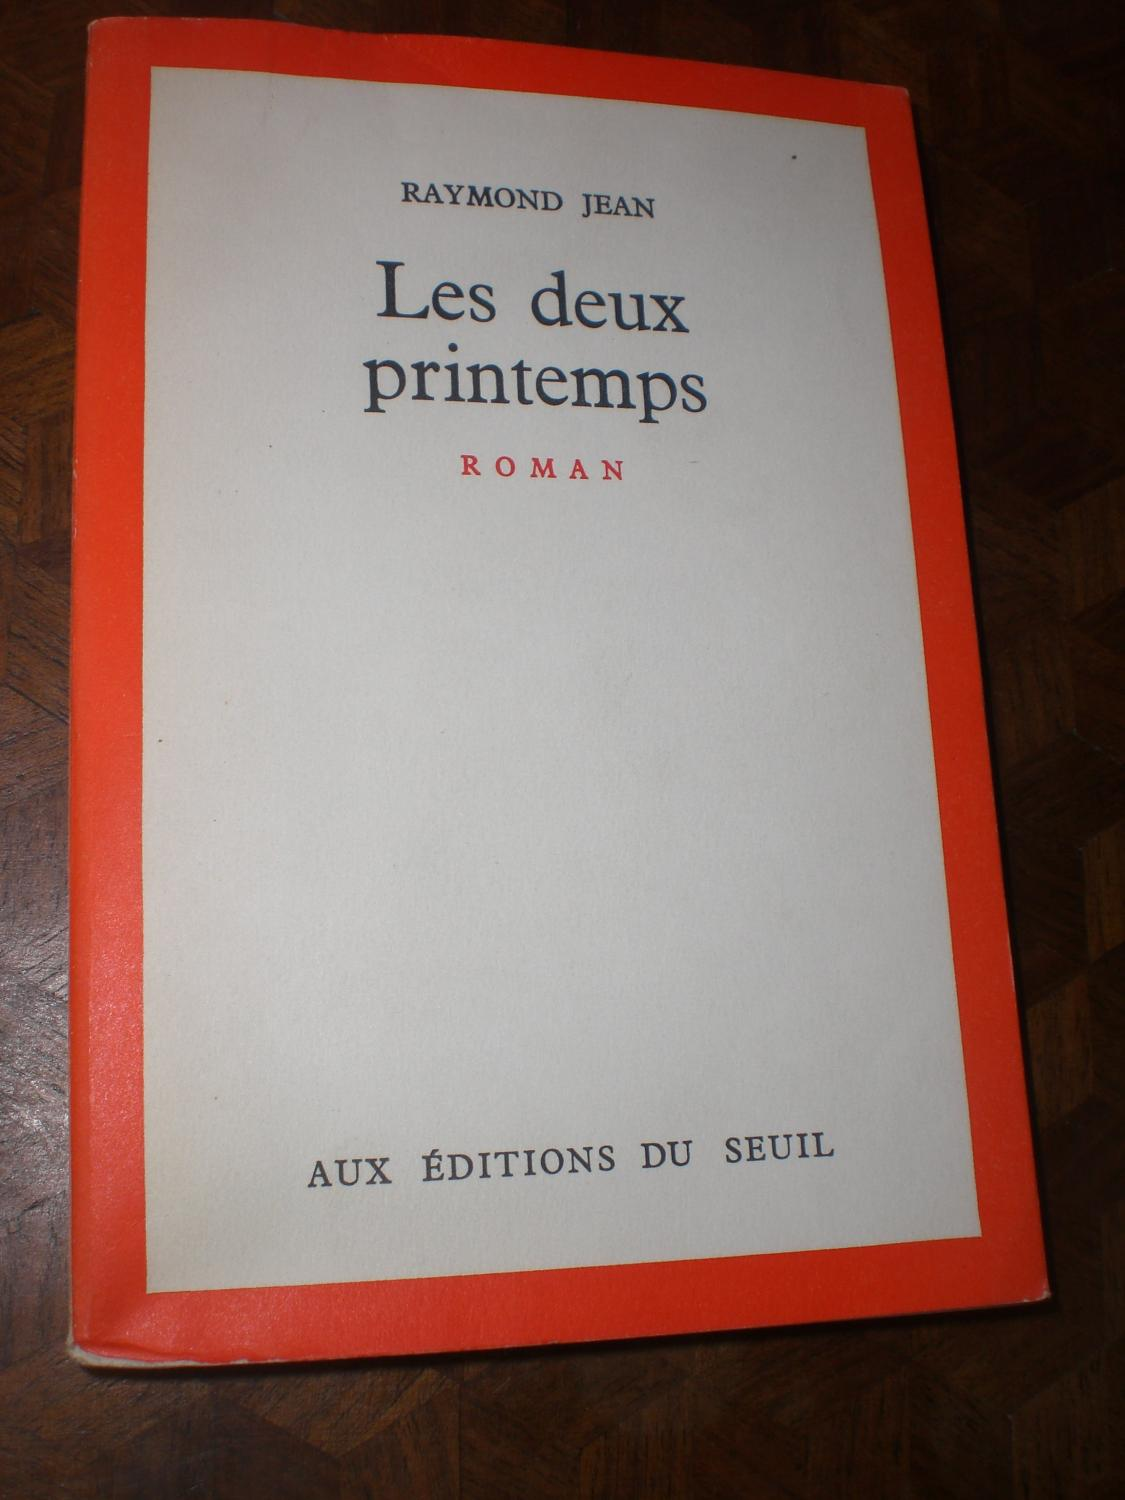 Les deux printemps Raymond Jean Very Good Softcover